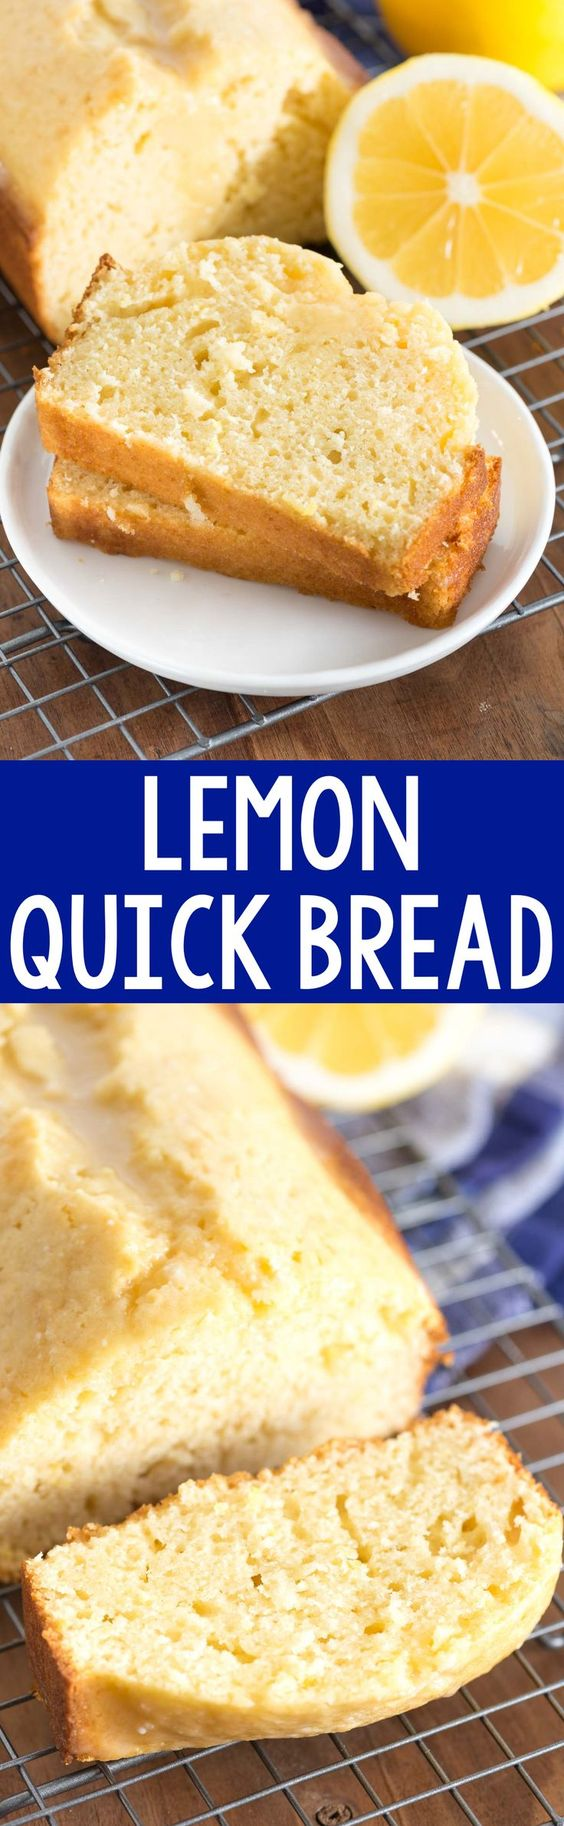 Lemon Quick Bread Recipe via Crazy for Crust - this easy quick bread recipe is bursting with lemon flavor. It's great for dessert or breakfast - with or without a lemon glaze!